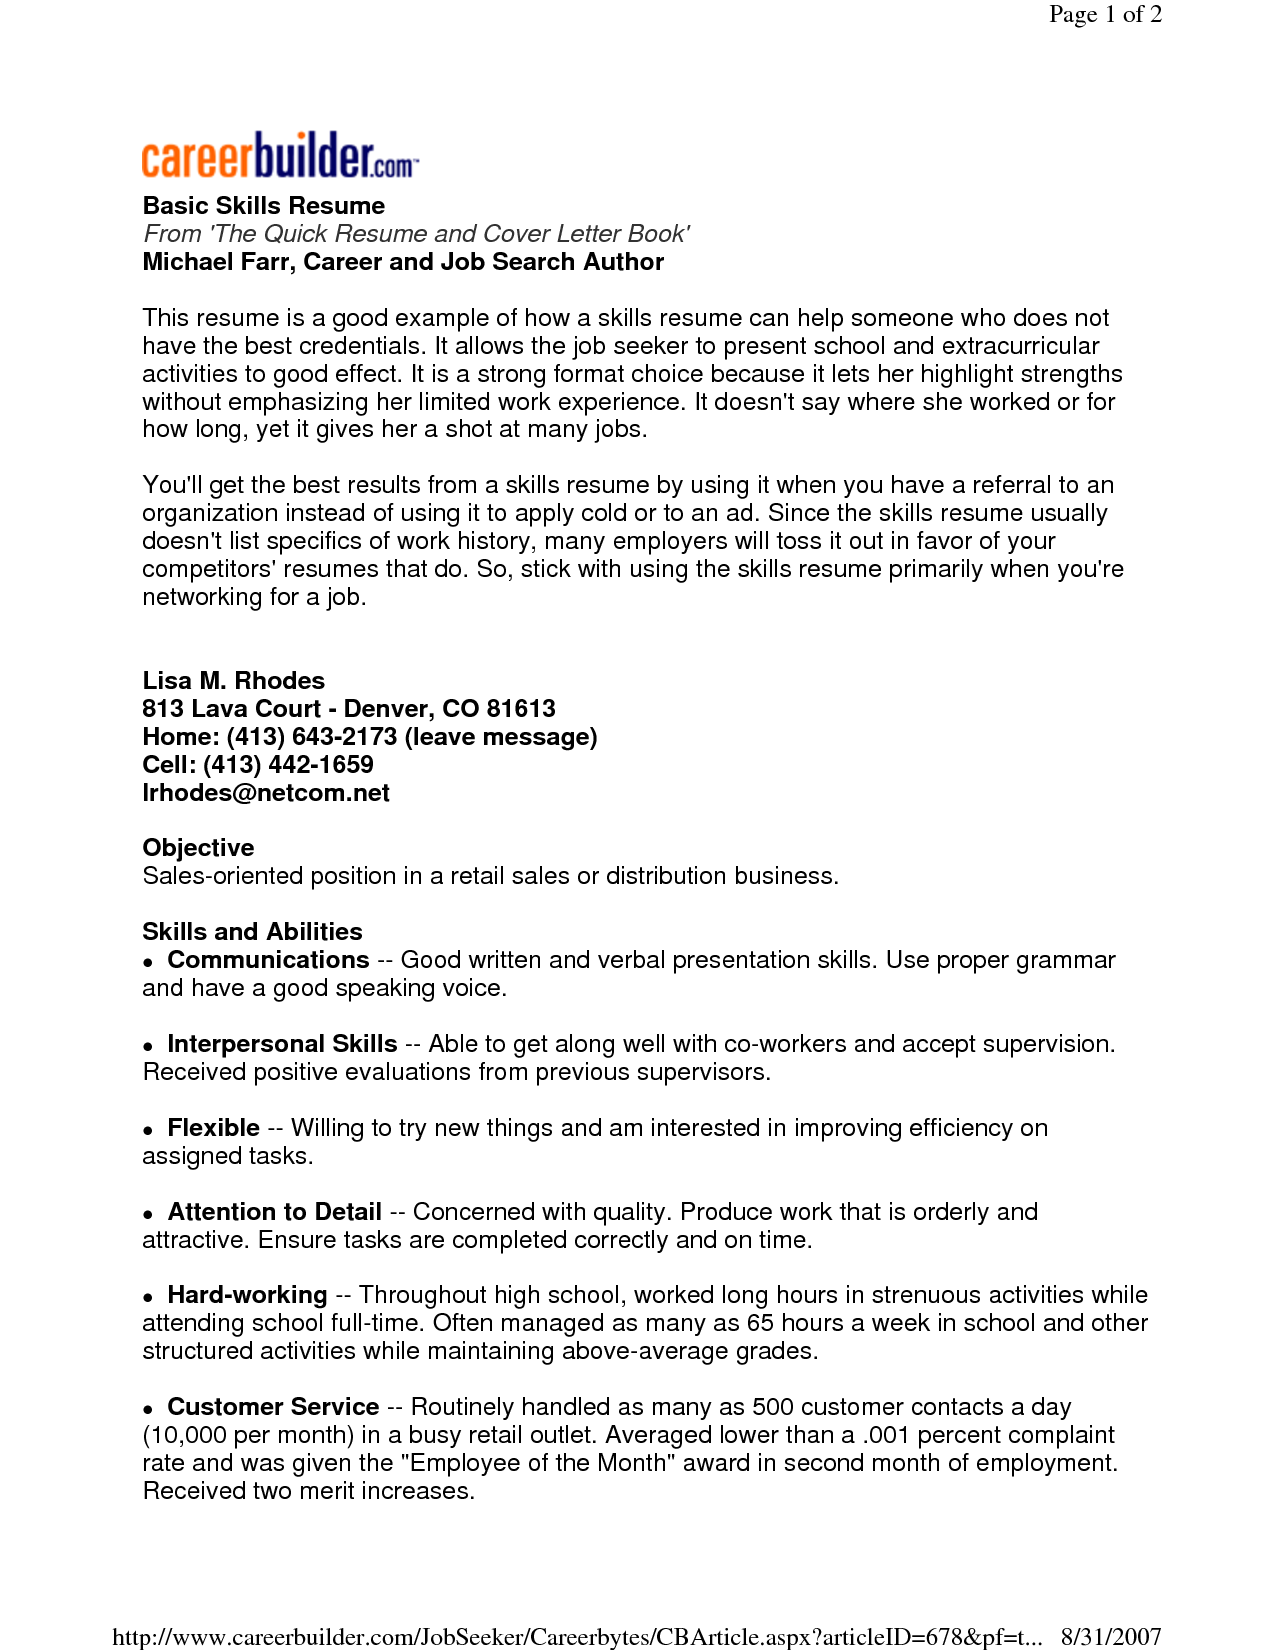 Examples Of Skills For Resume Interesting Basic Resume Examples Skills  Httpwww.resumecareerbasic .